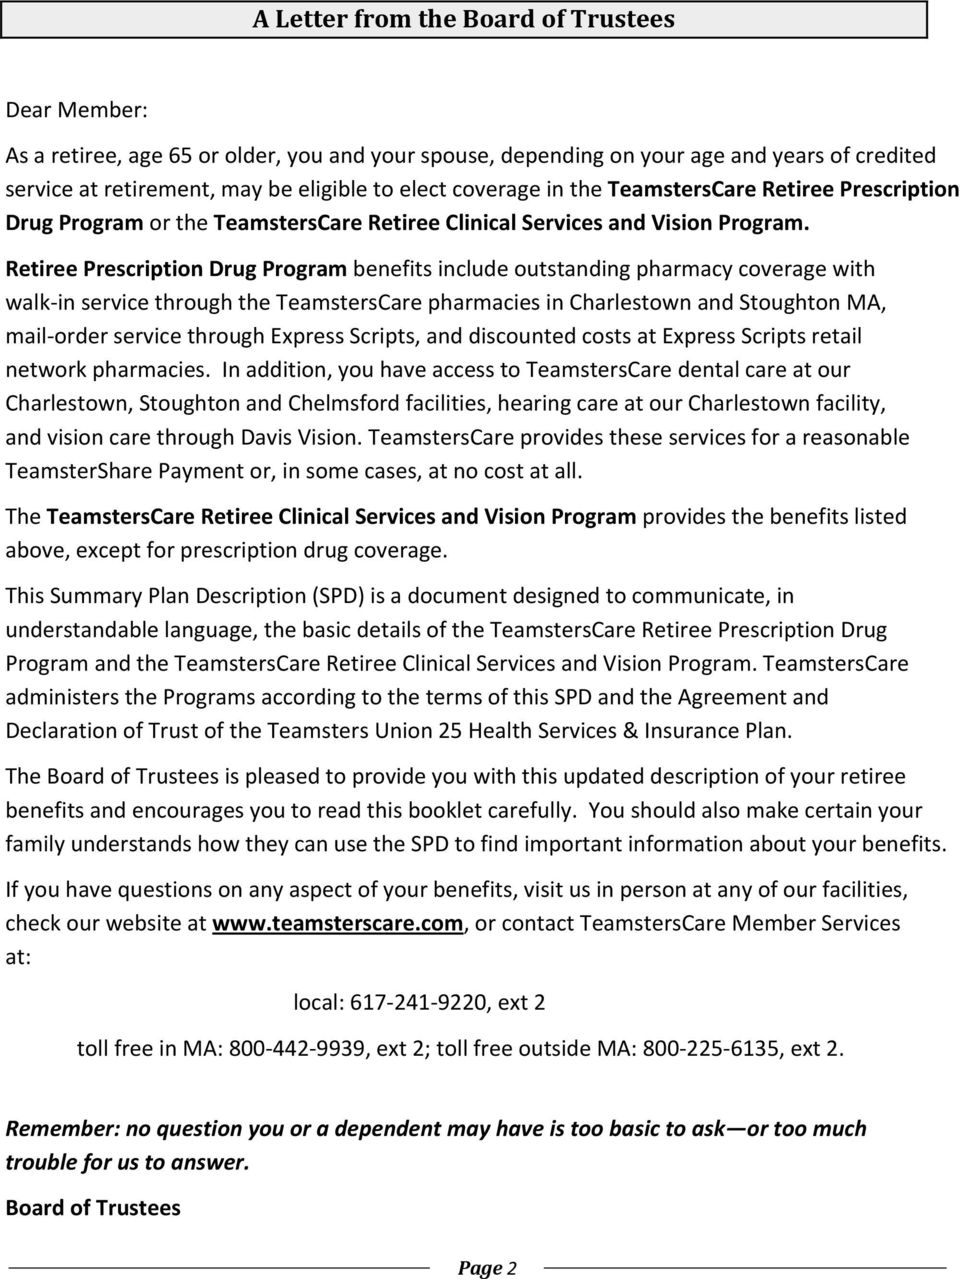 Retiree Prescription Drug Program benefits include outstanding pharmacy coverage with walk-in service through the TeamstersCare pharmacies in Charlestown and Stoughton MA, mail-order service through